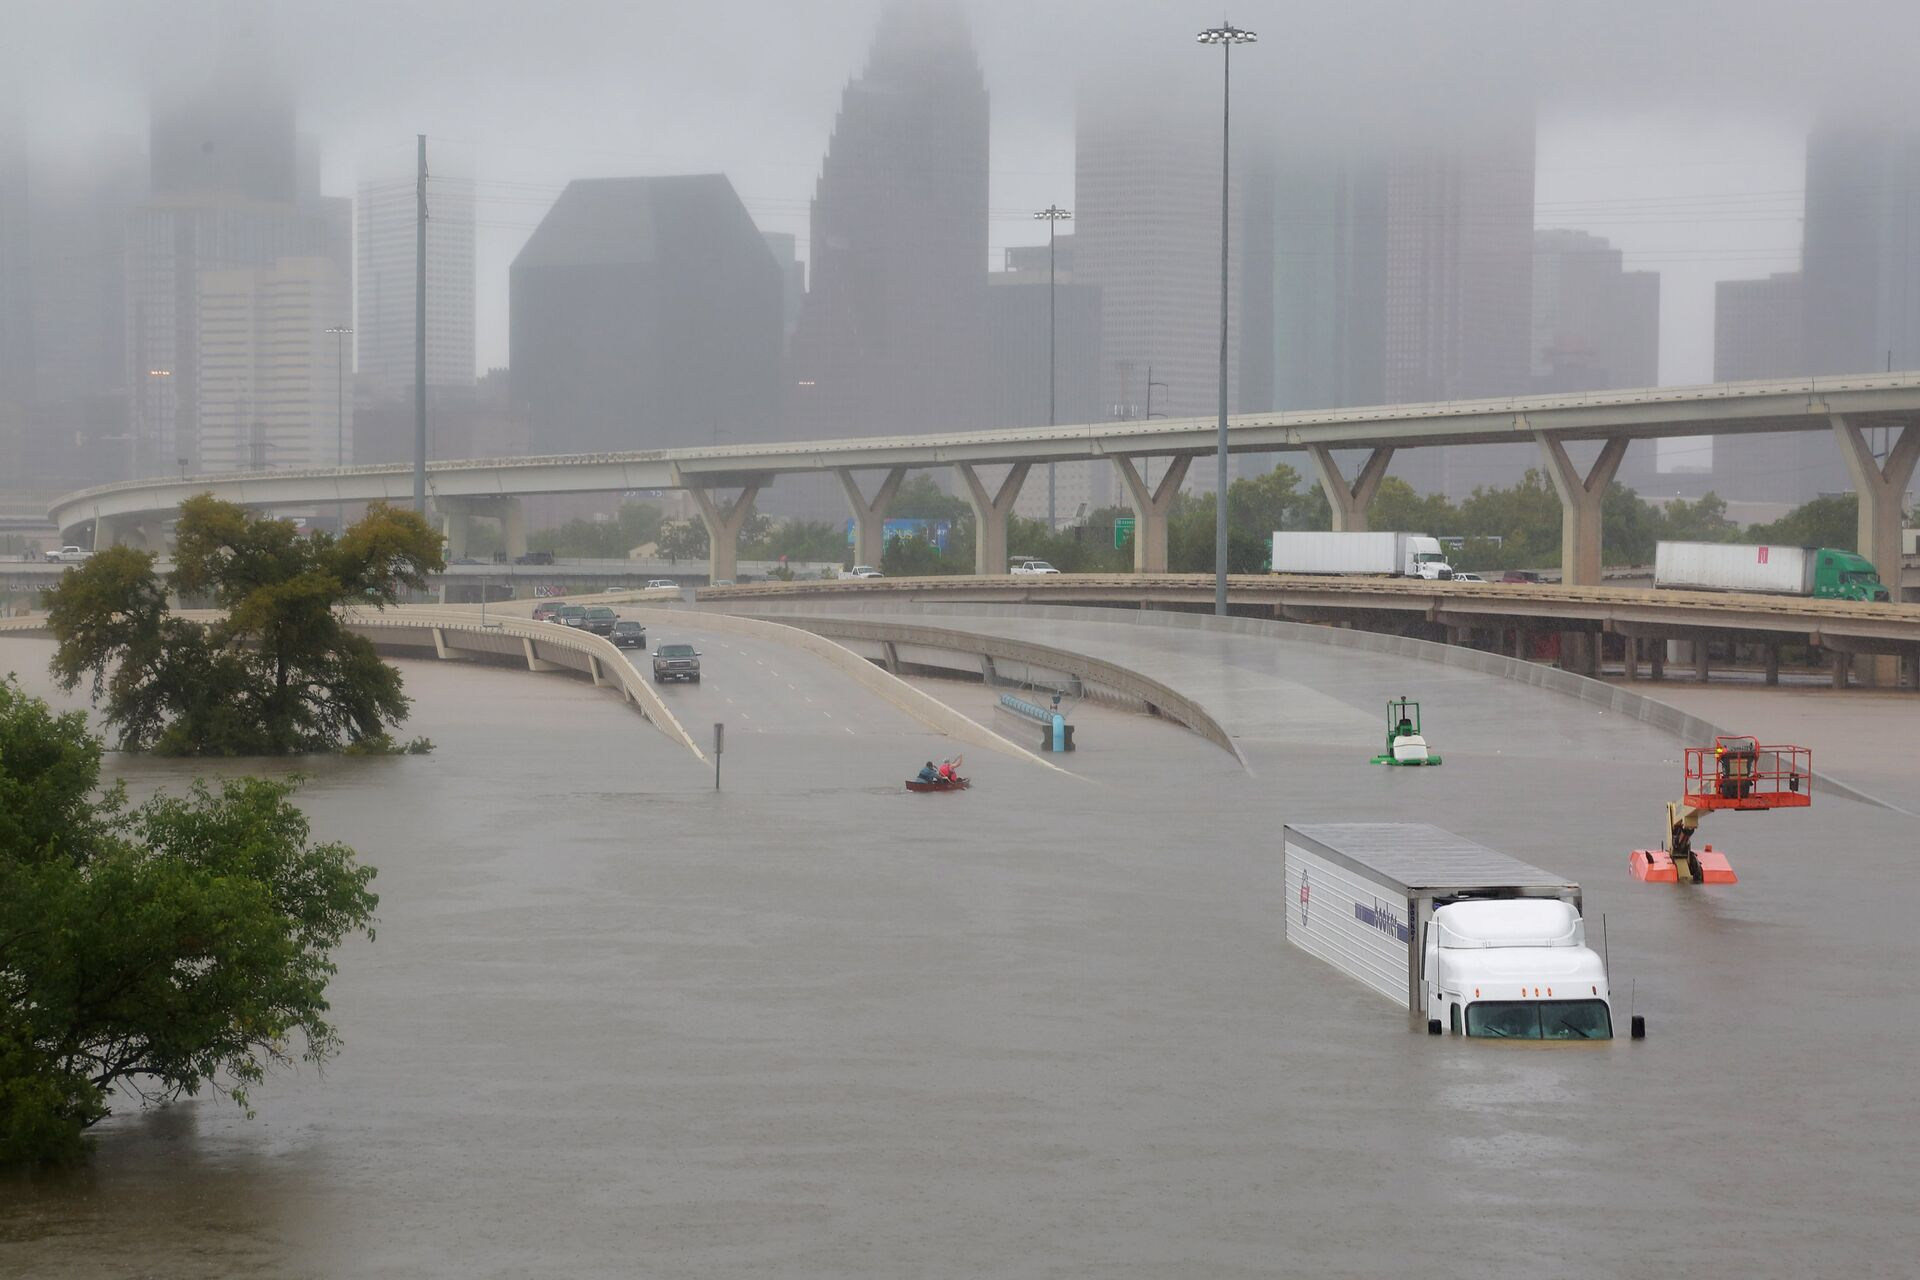 Interstate highway 45 is submerged from the effects of Hurricane Harvey seen during widespread flooding in Houston, Texas, U.S.  - Sputnik International, 1920, 21.09.2021